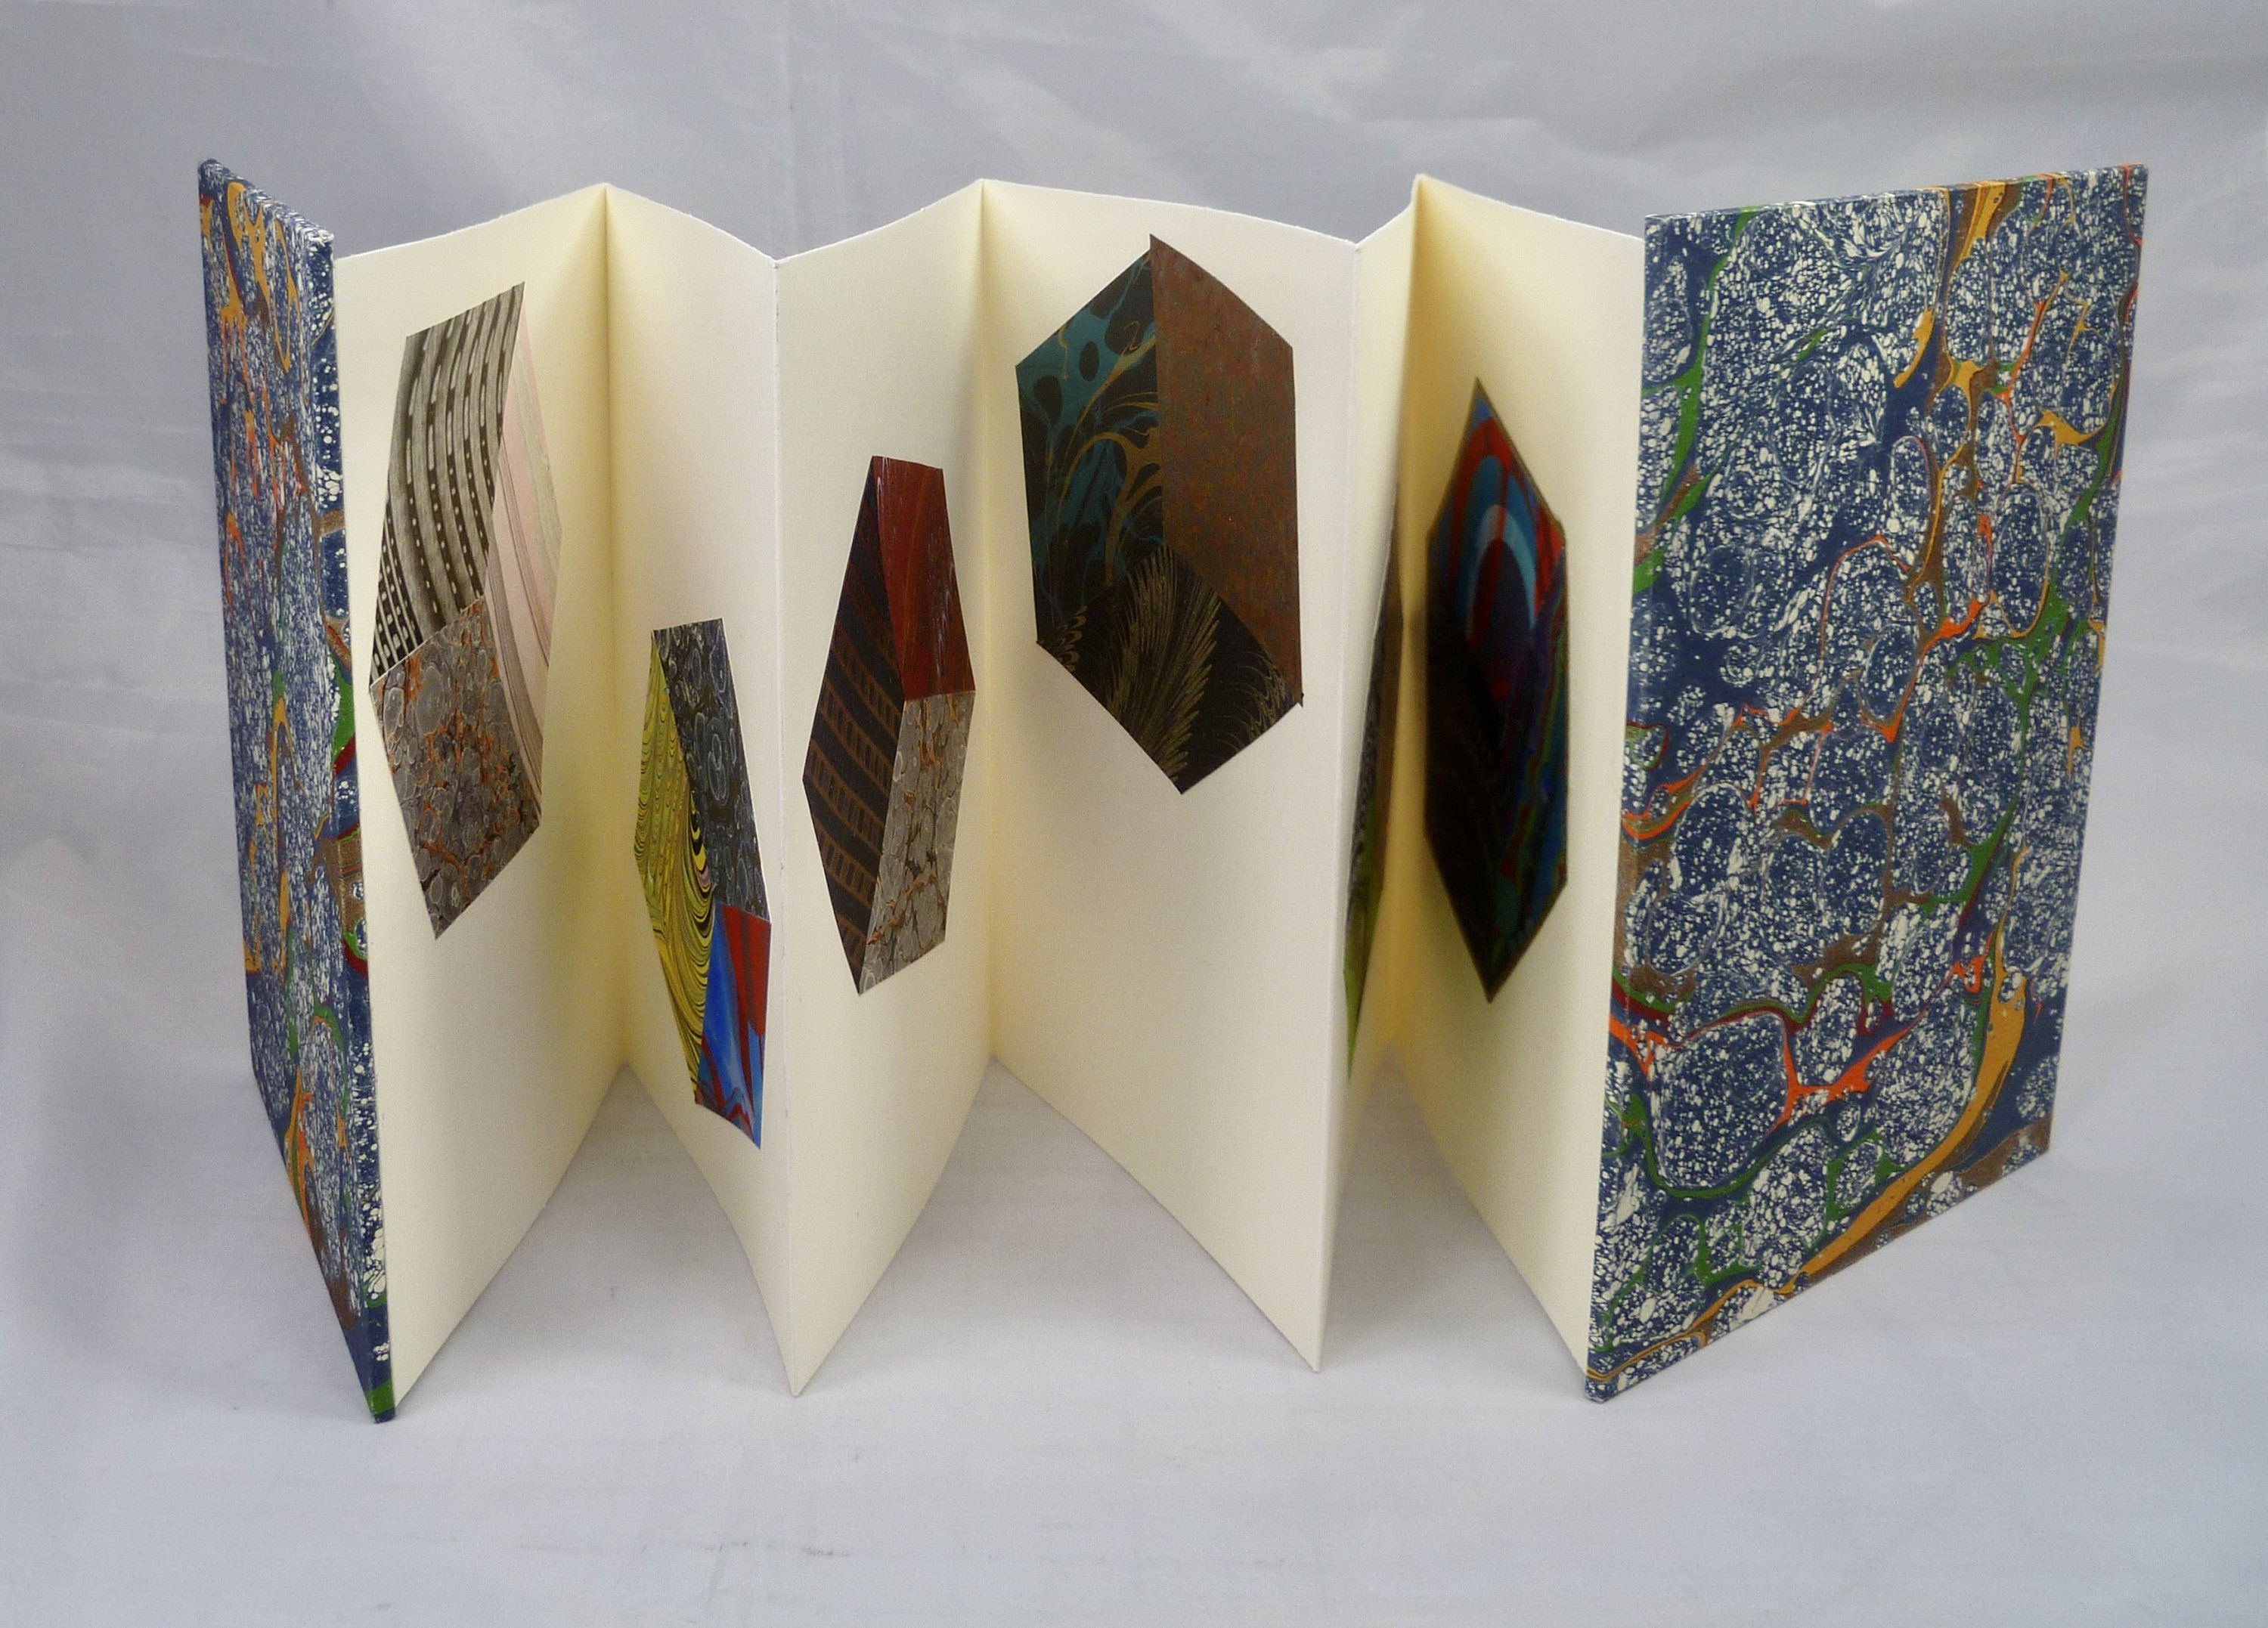 Accordion Book With Tumbling Cubes Of Marbled Papers Etsy In 2020 Accordion Book Book Art Book Making